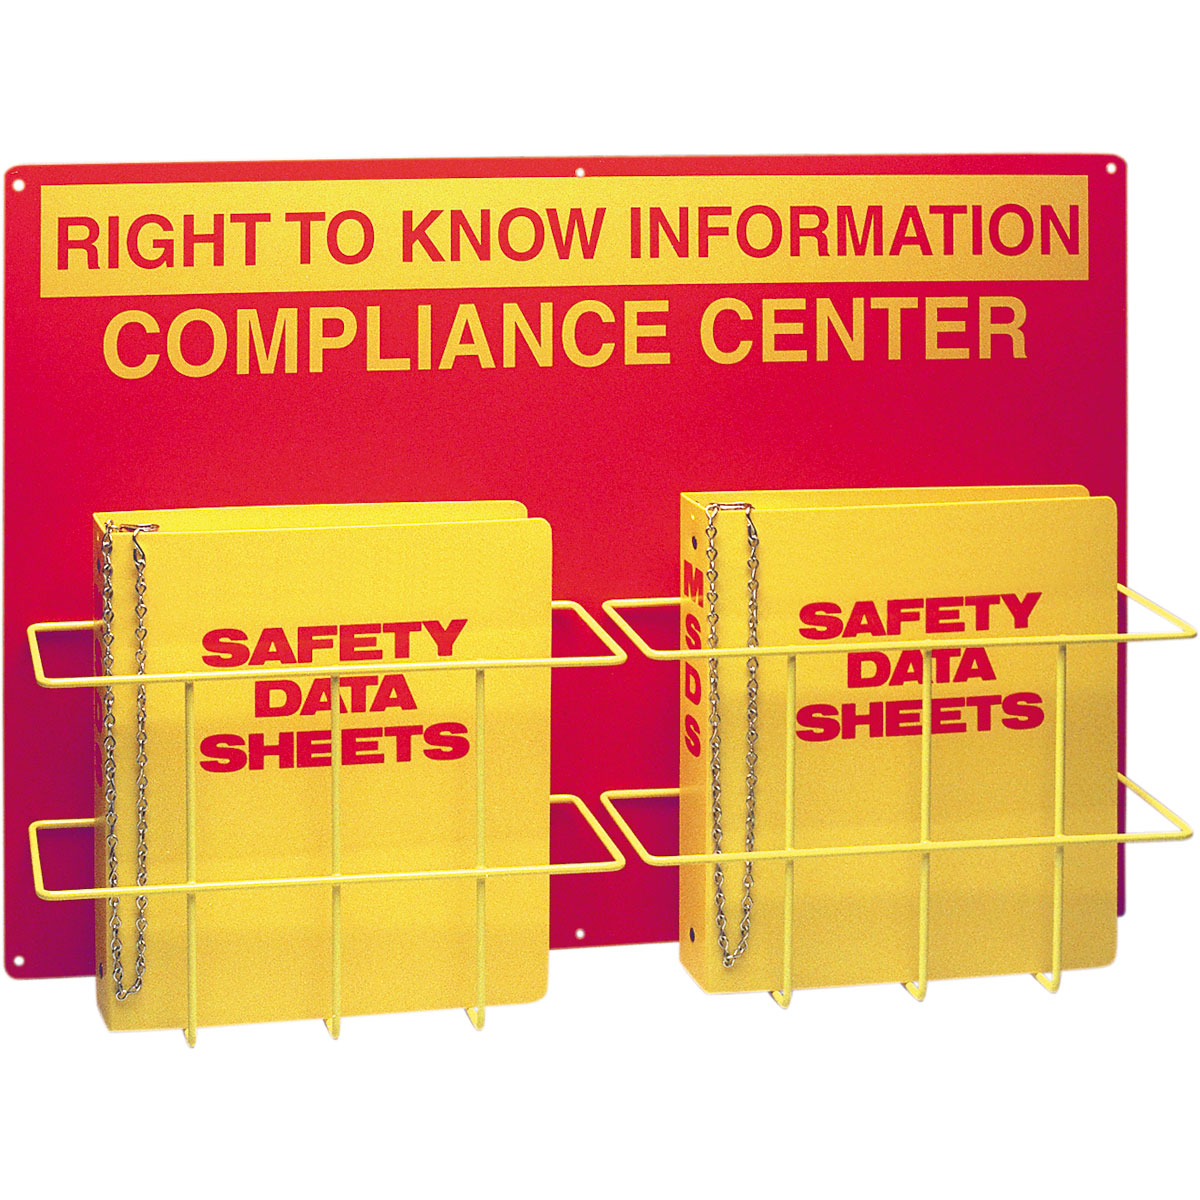 Brady® Prinzing® 2010DB Double Right-To-Know Center, RIGHT TO KNOW INFORMATION COMPLIANCE CENTER Legend, English, Yellow on Red, 20 in H x 29 in W, Polystyrene, Wall Mount